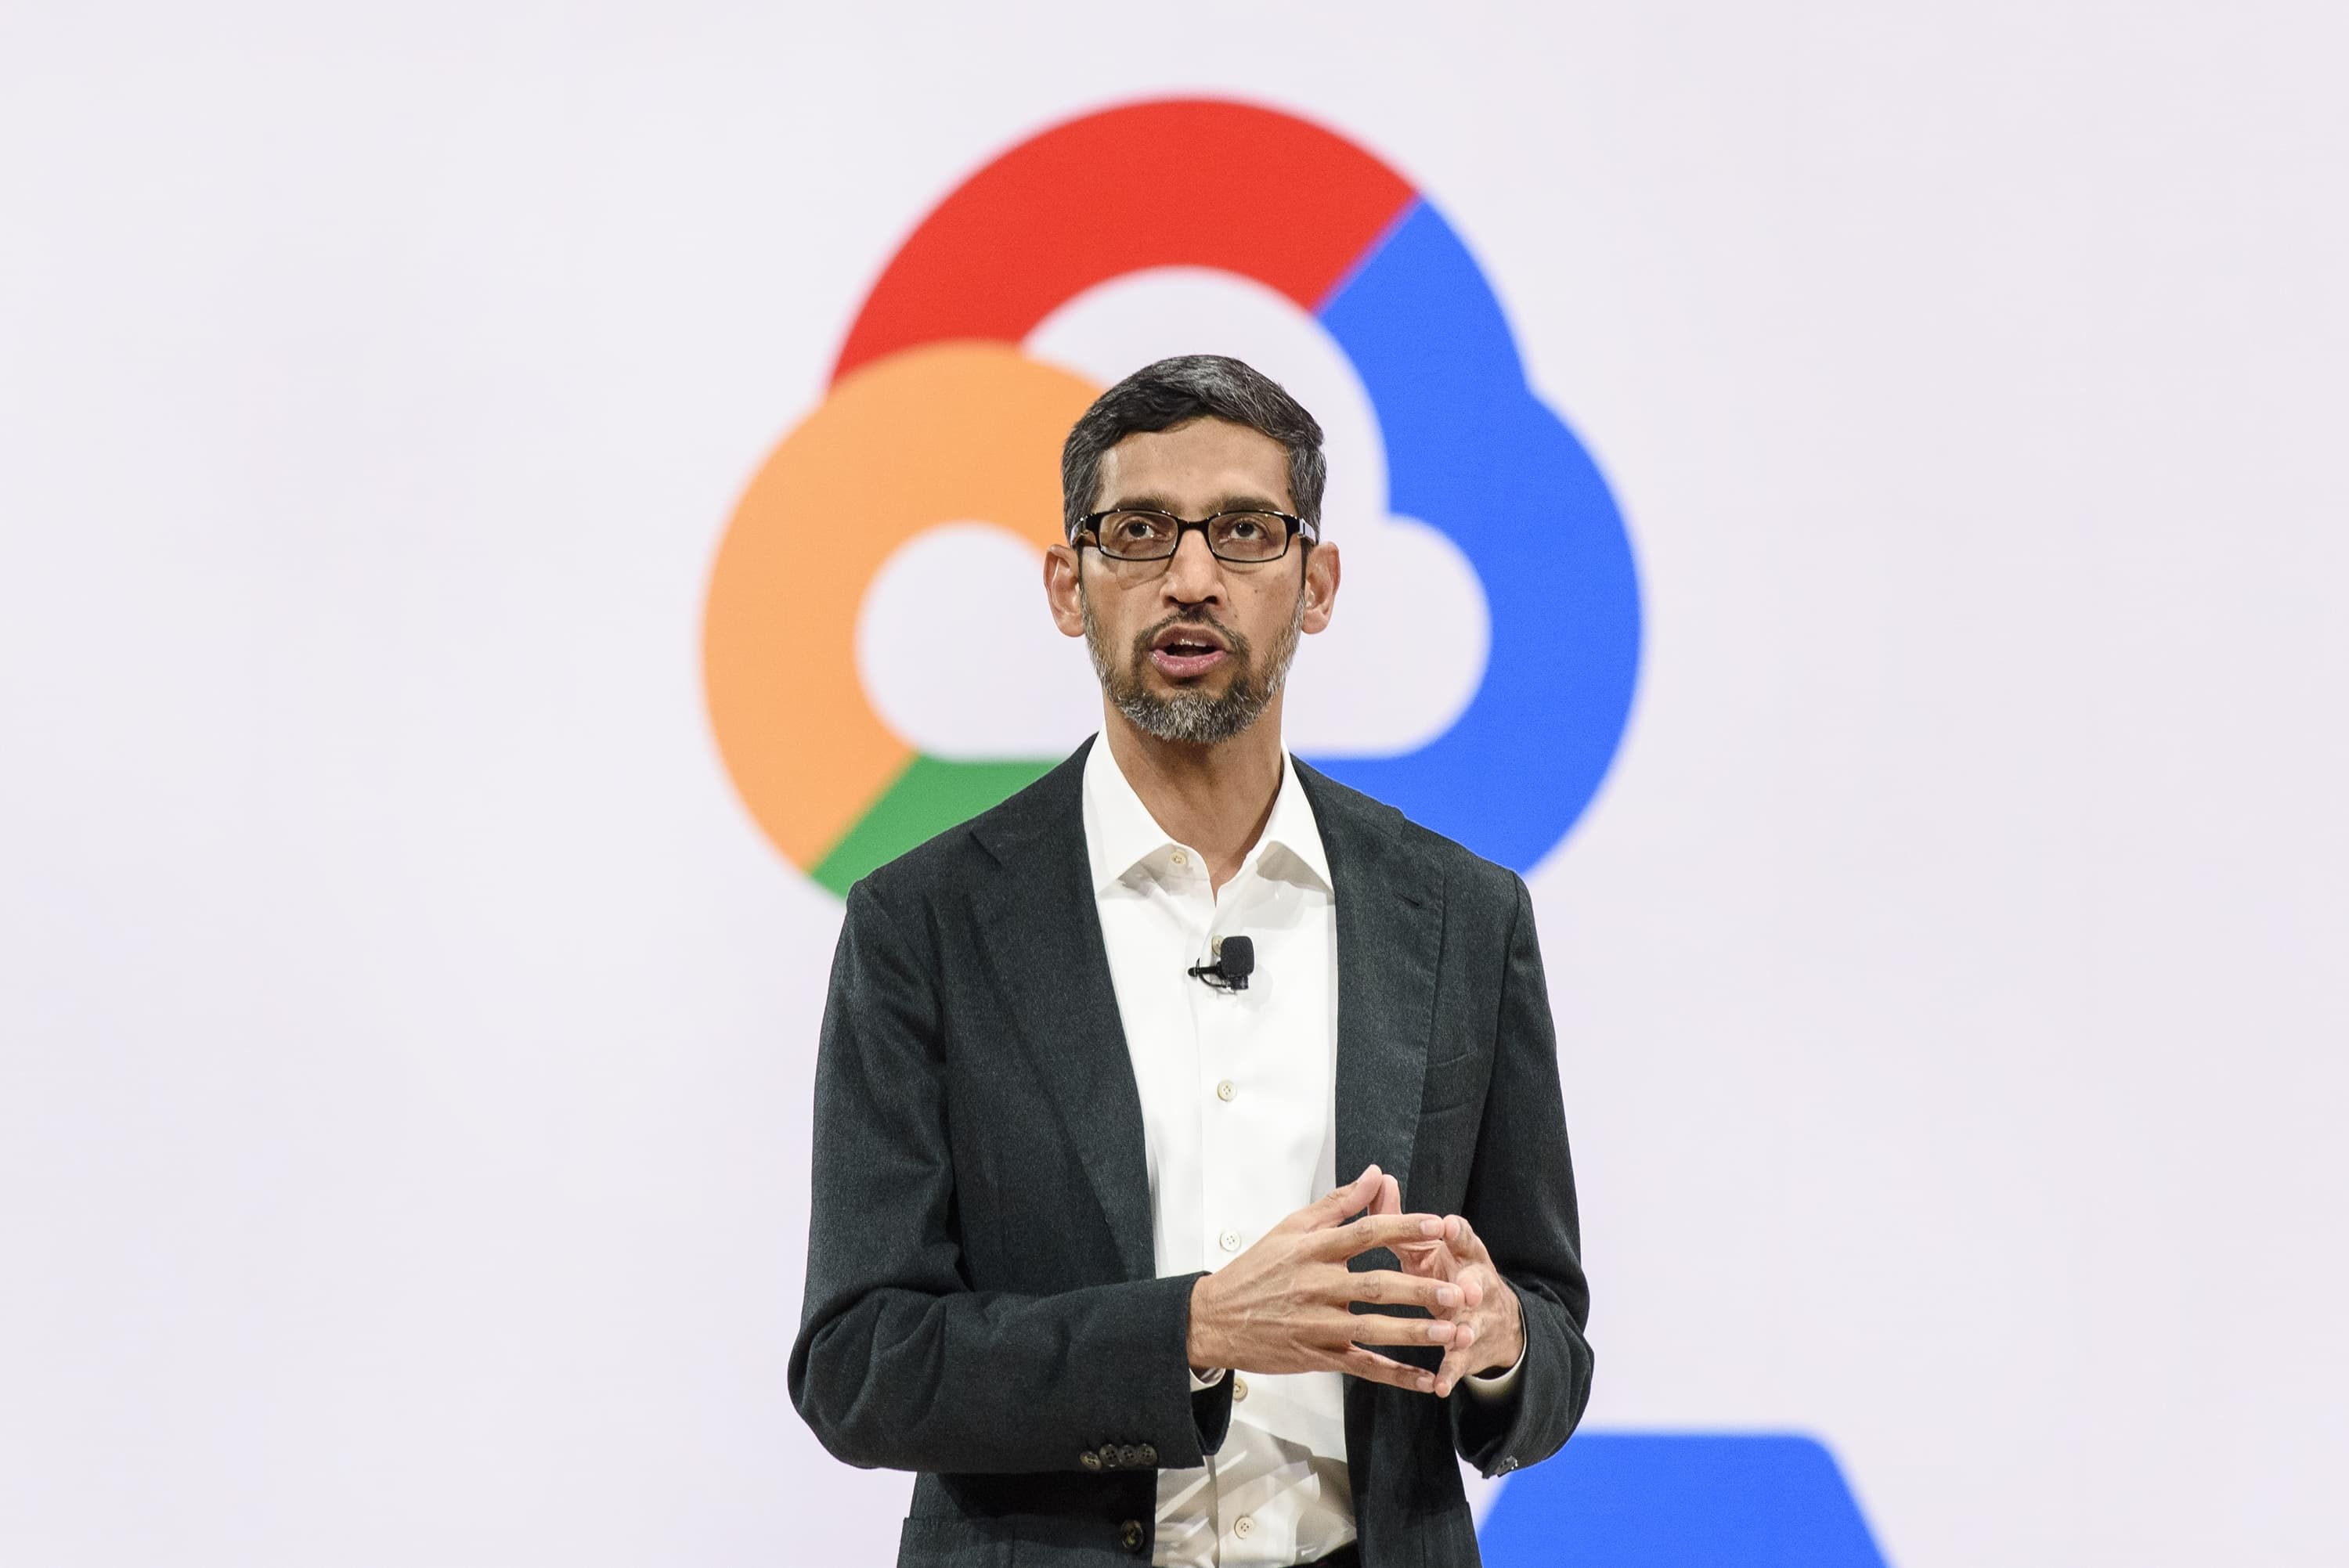 Google will outperform in 2020 under new CEO Pichai, says Pivotal Research as it upgrades the stock